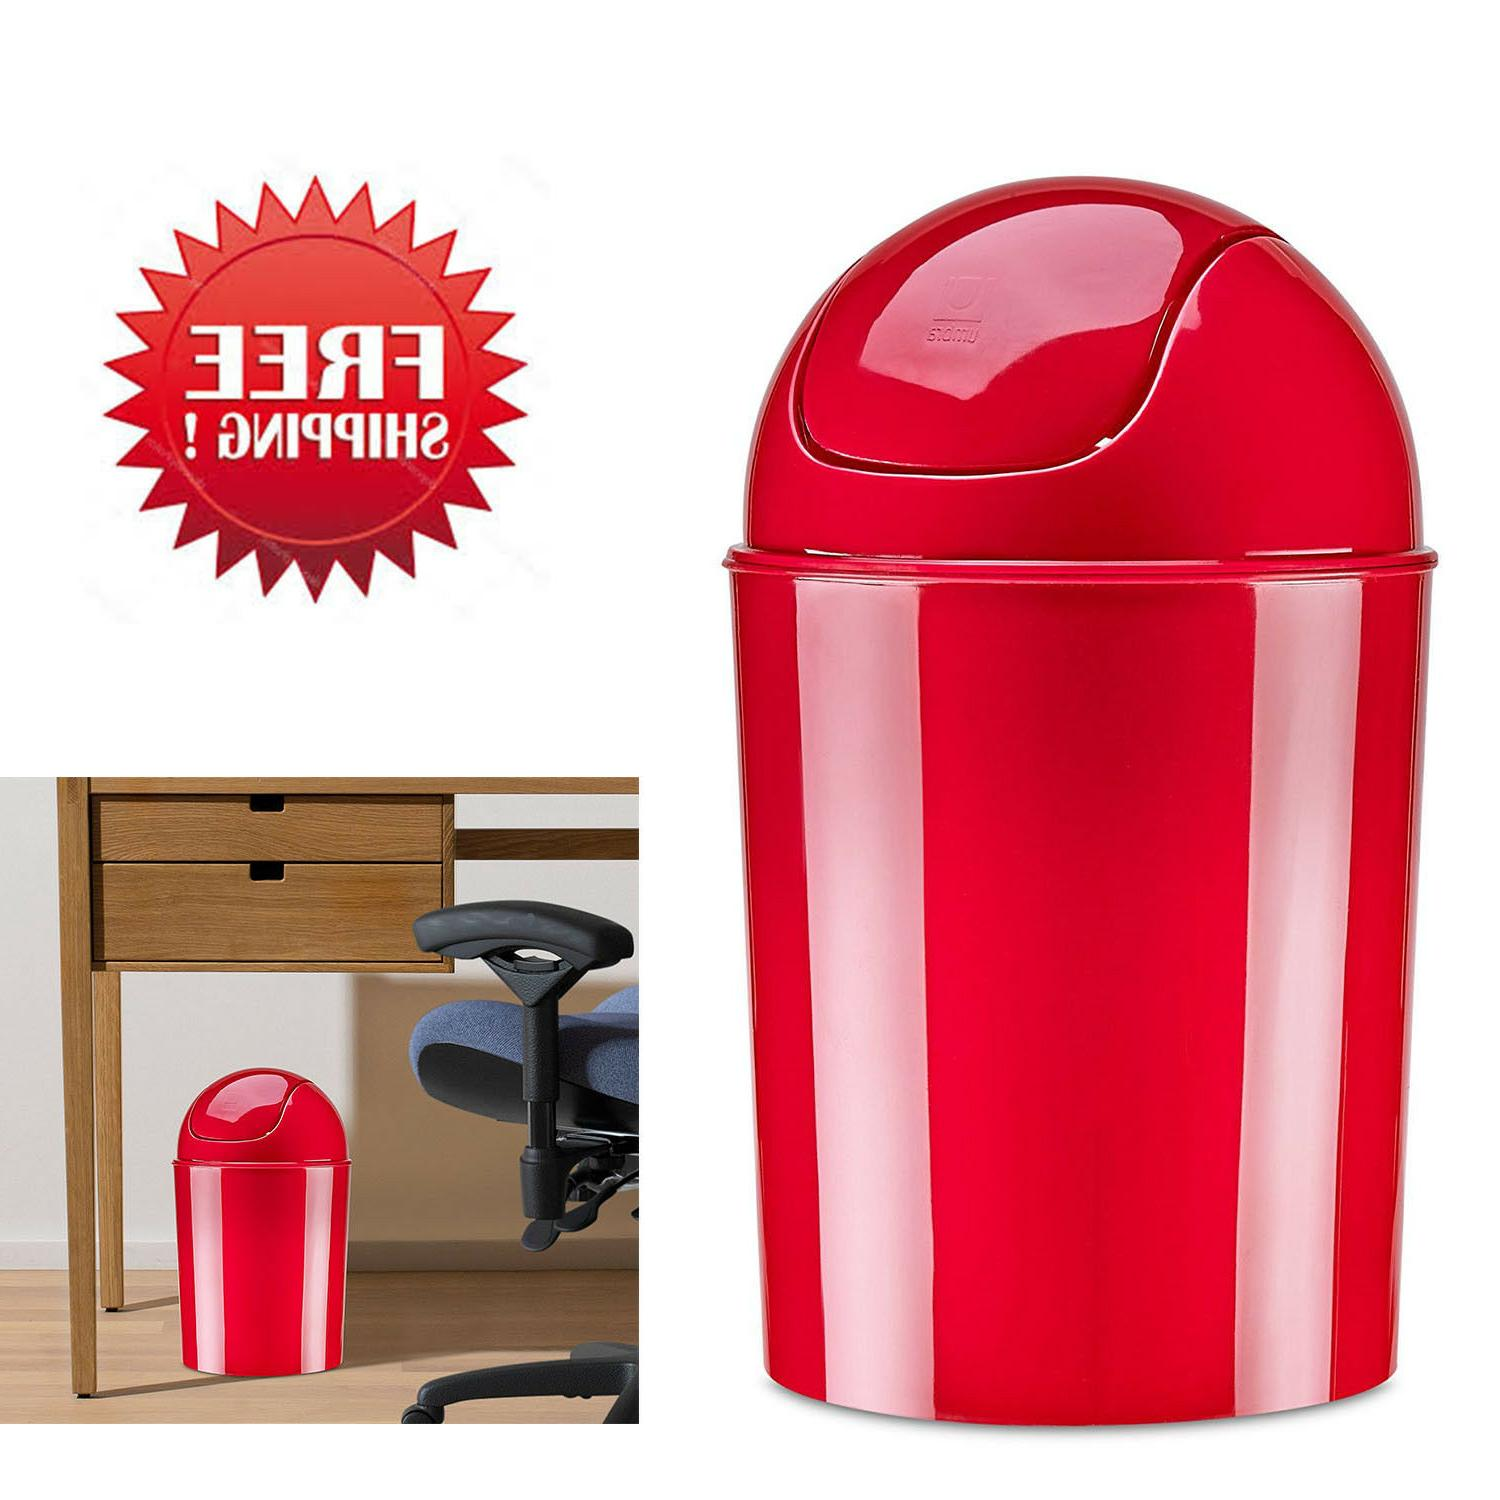 Umbra Mini Waste Can, 1-1/2 Gallon with Swing Lid